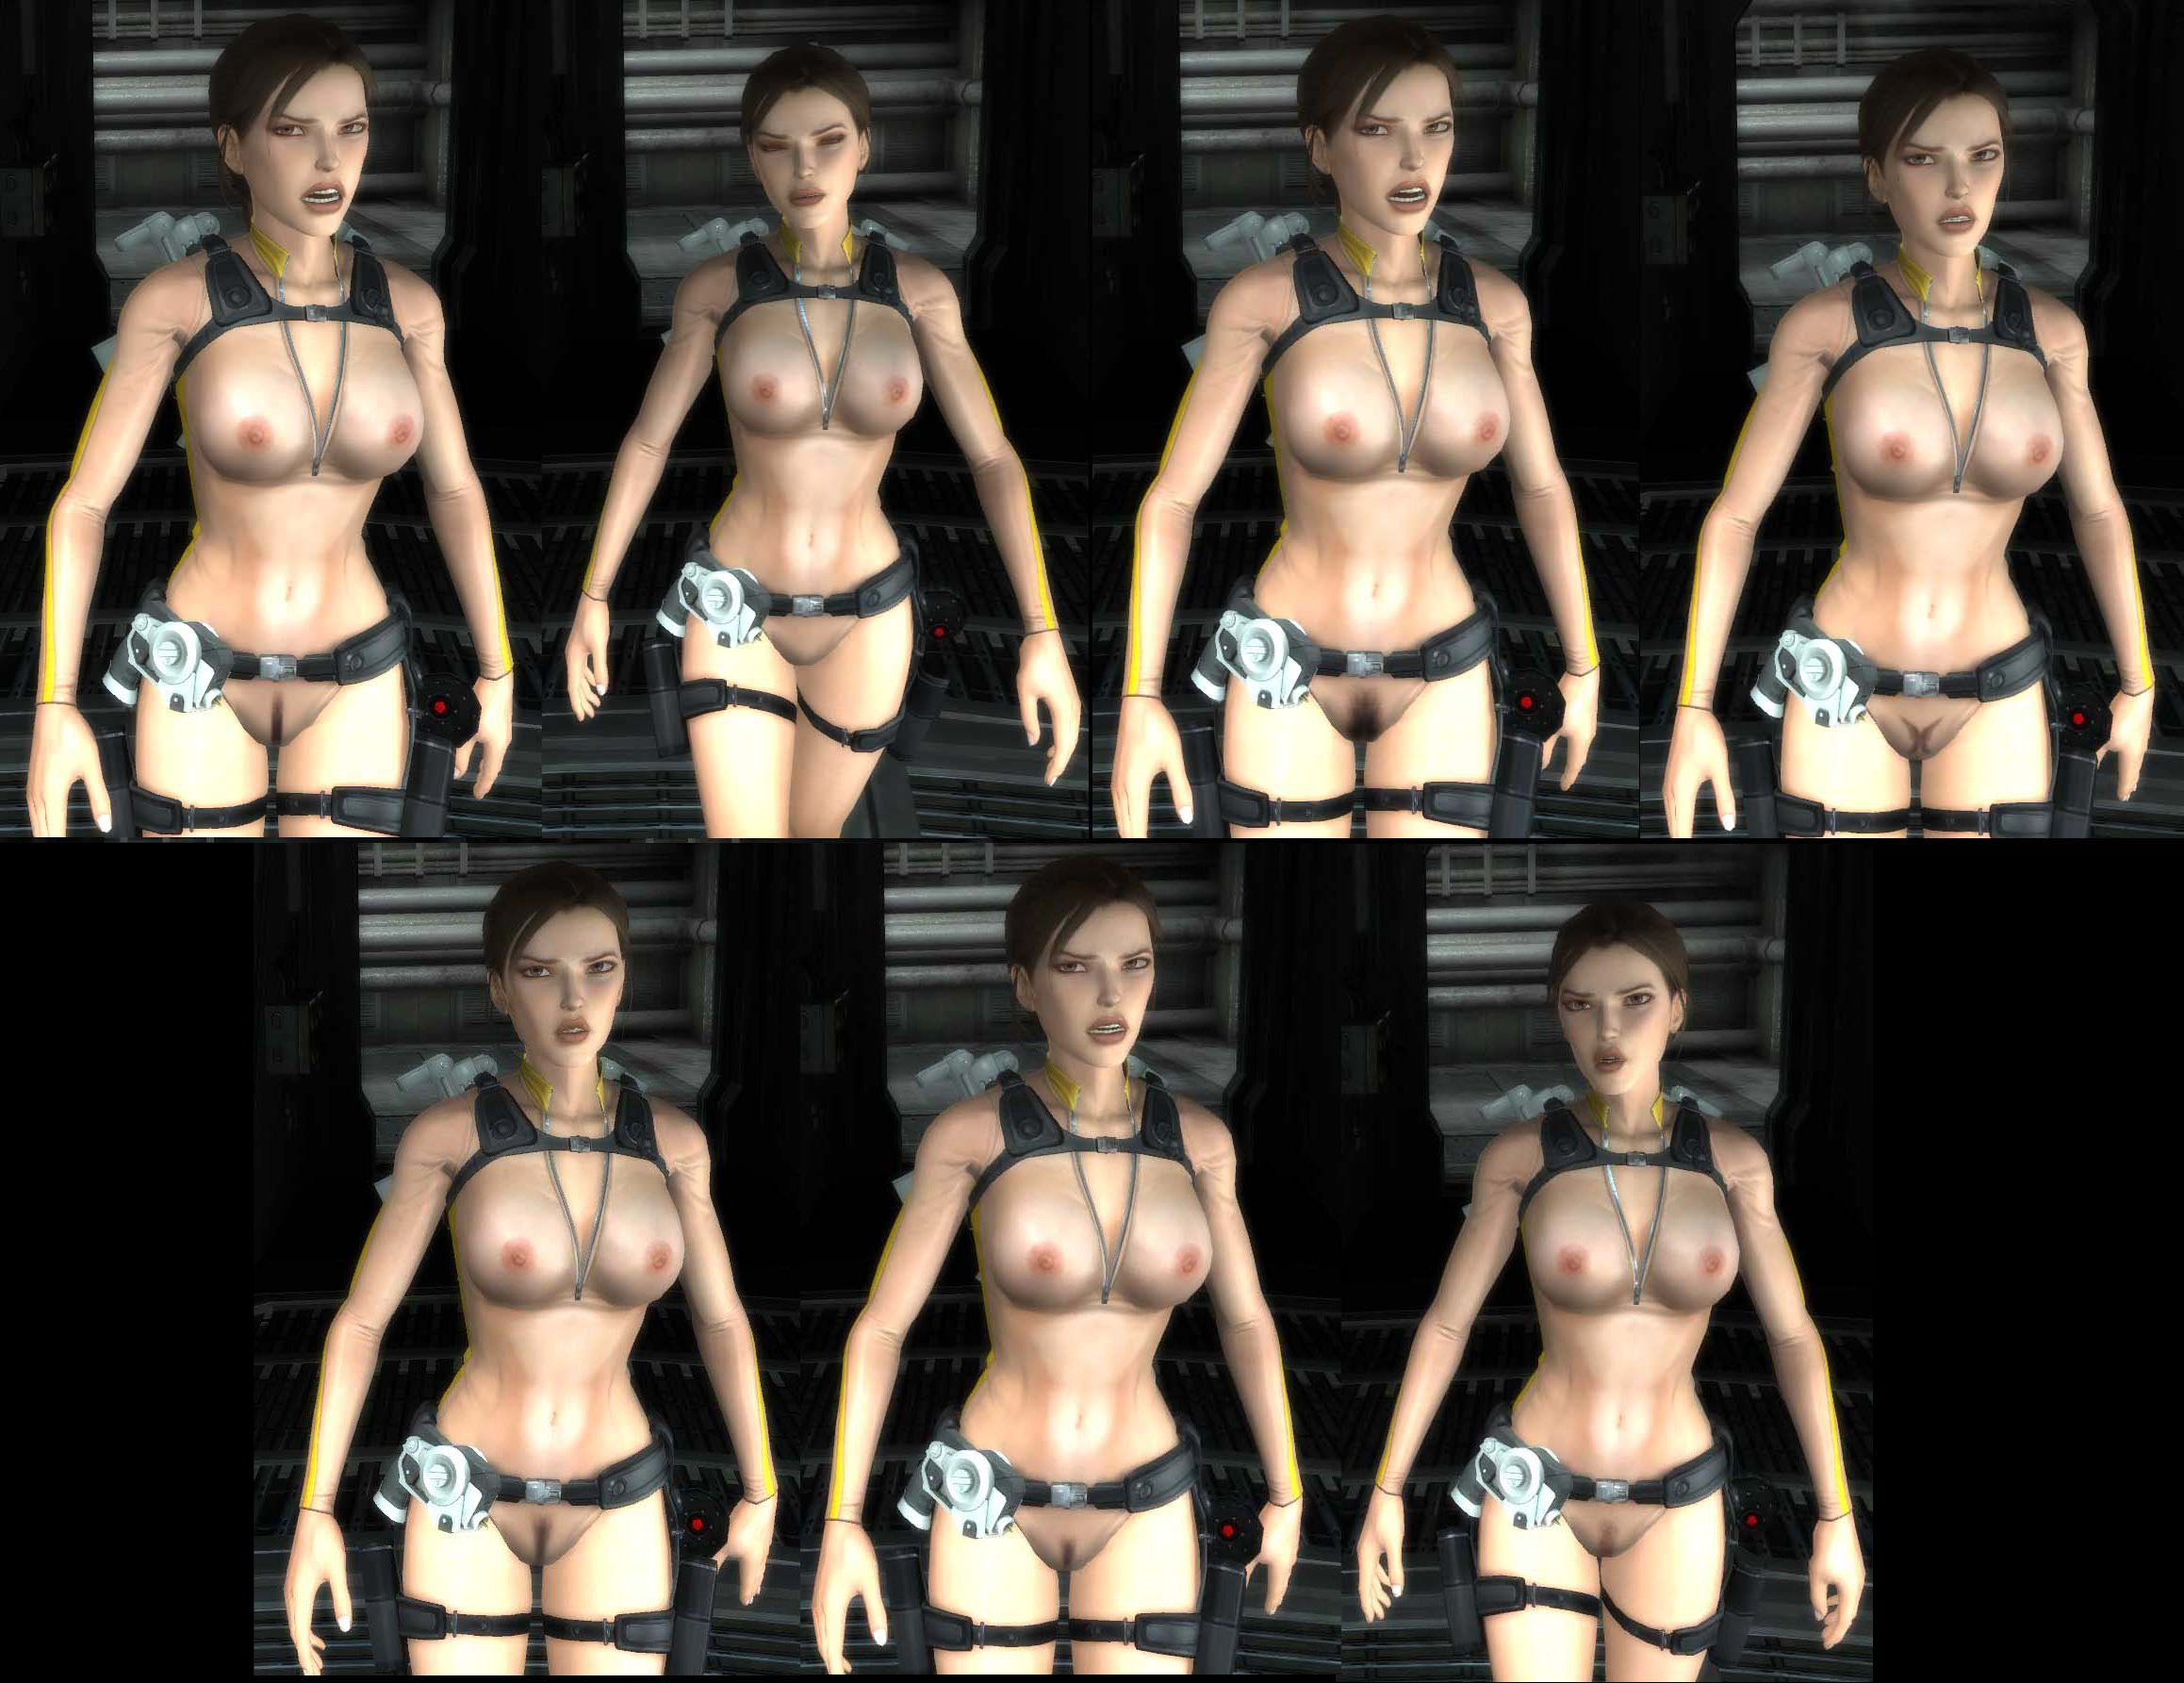 Nude raider undercover smut photo